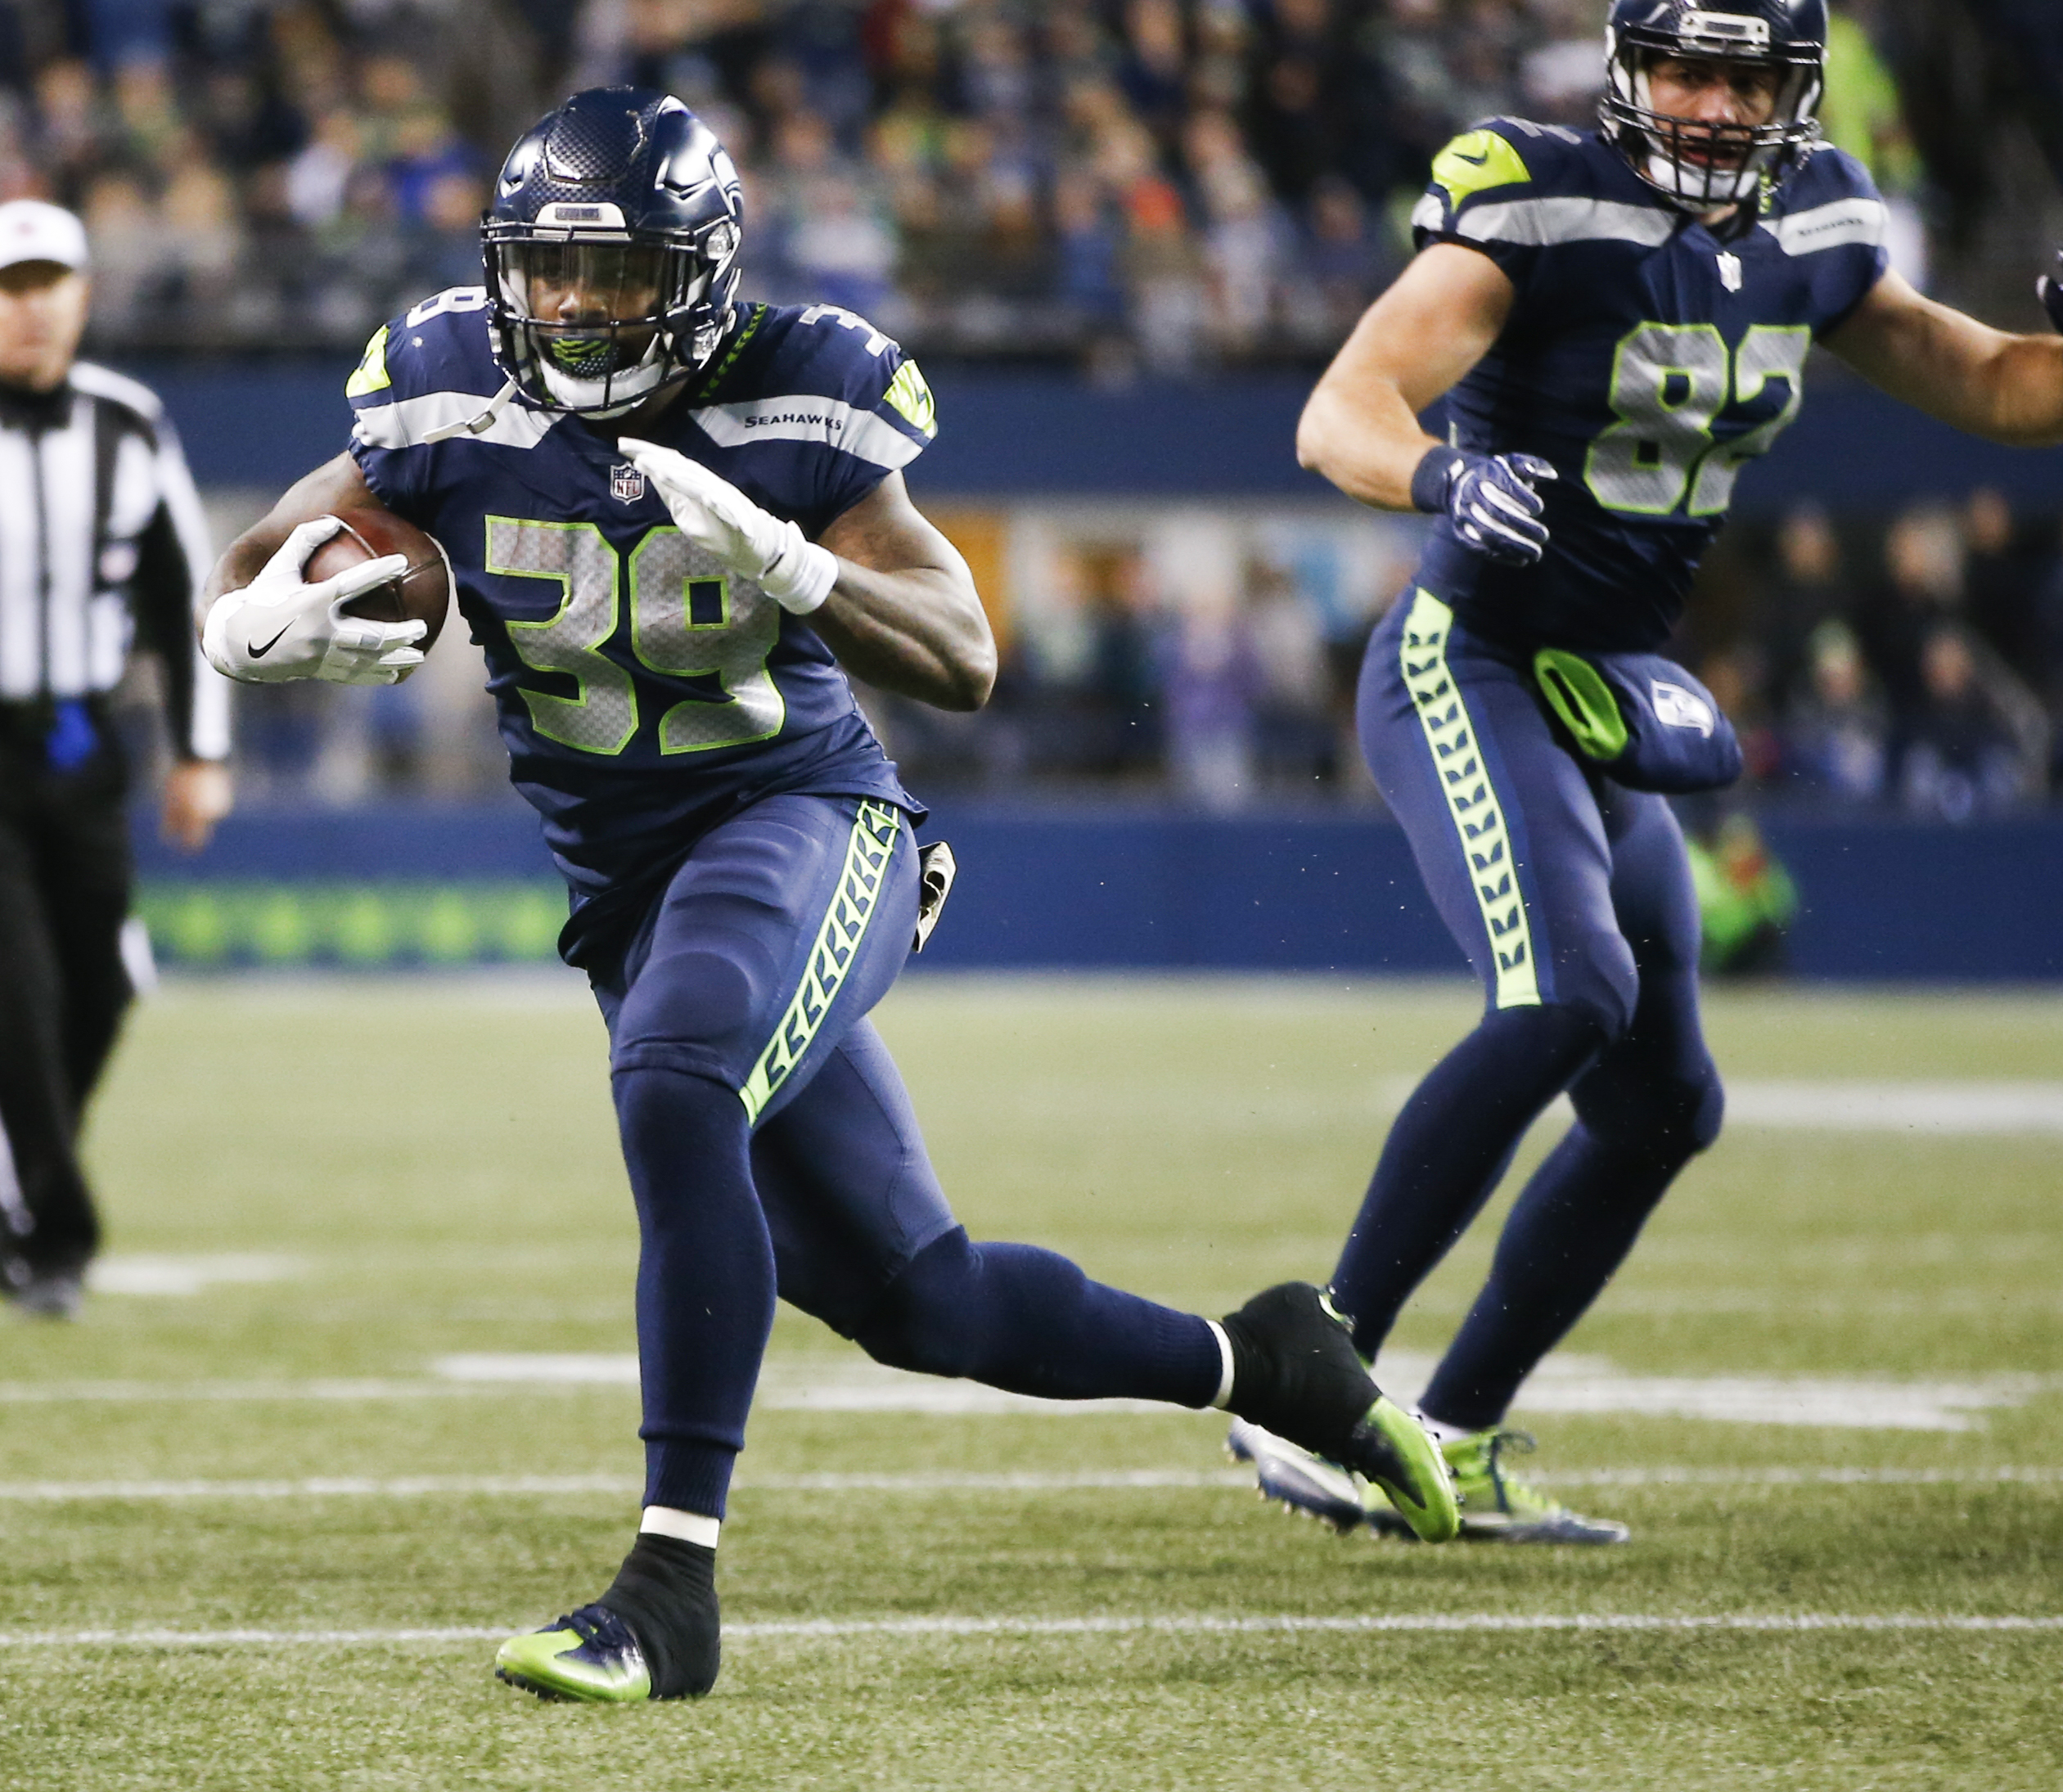 Falcons hold off Seahawks 34-31